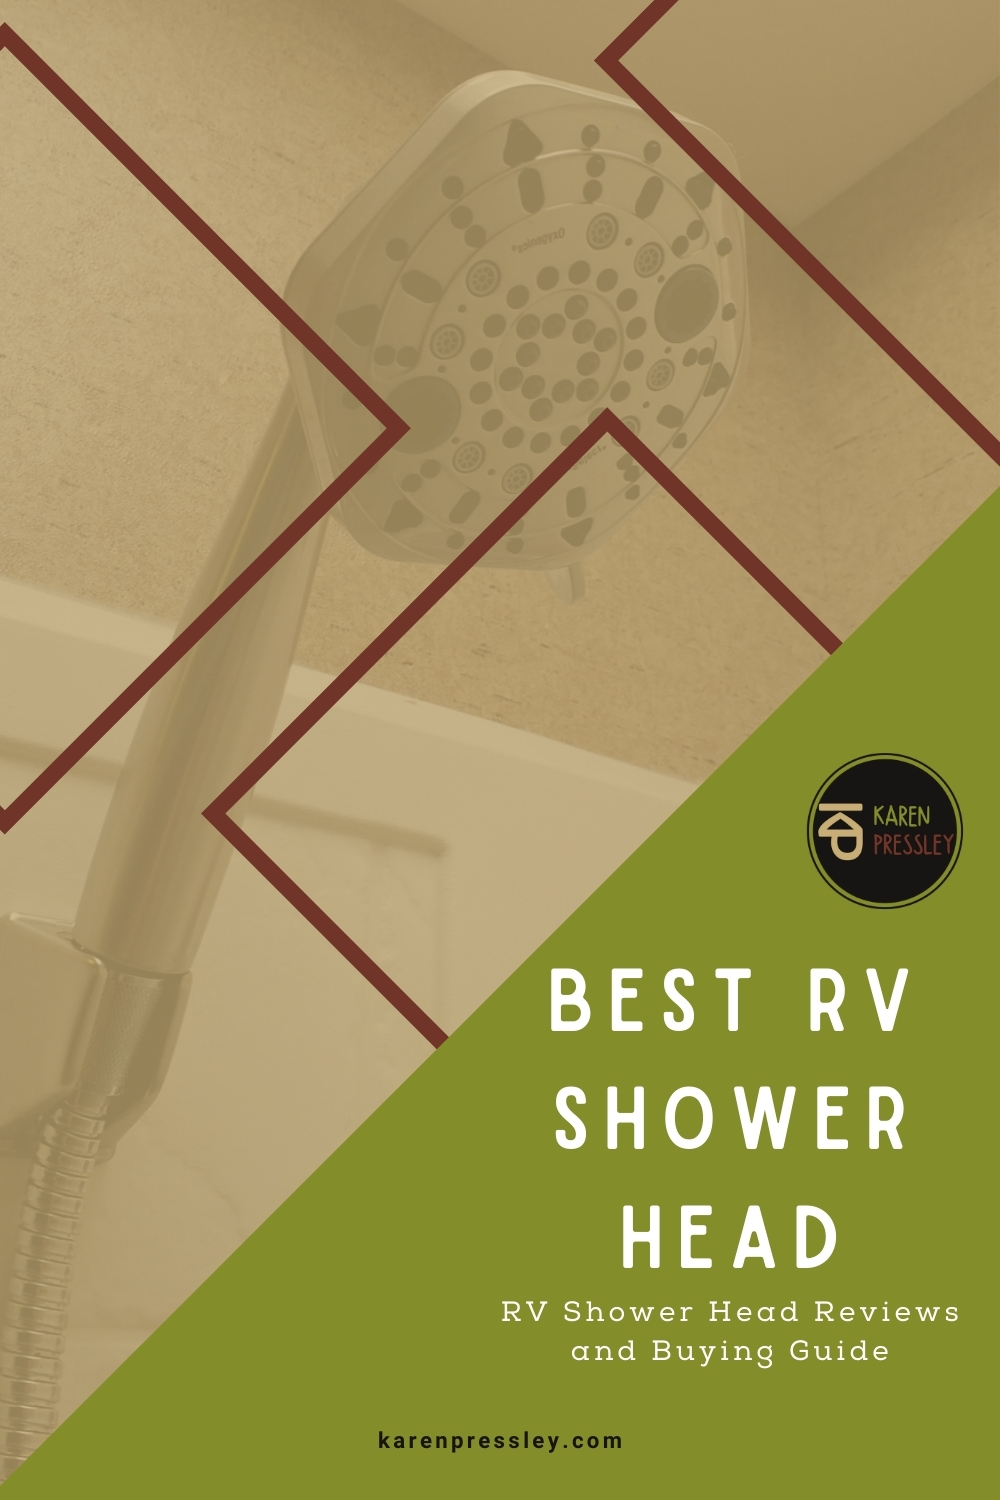 Best RV Shower Head (RV Shower Head Reviews and Buying Guide)